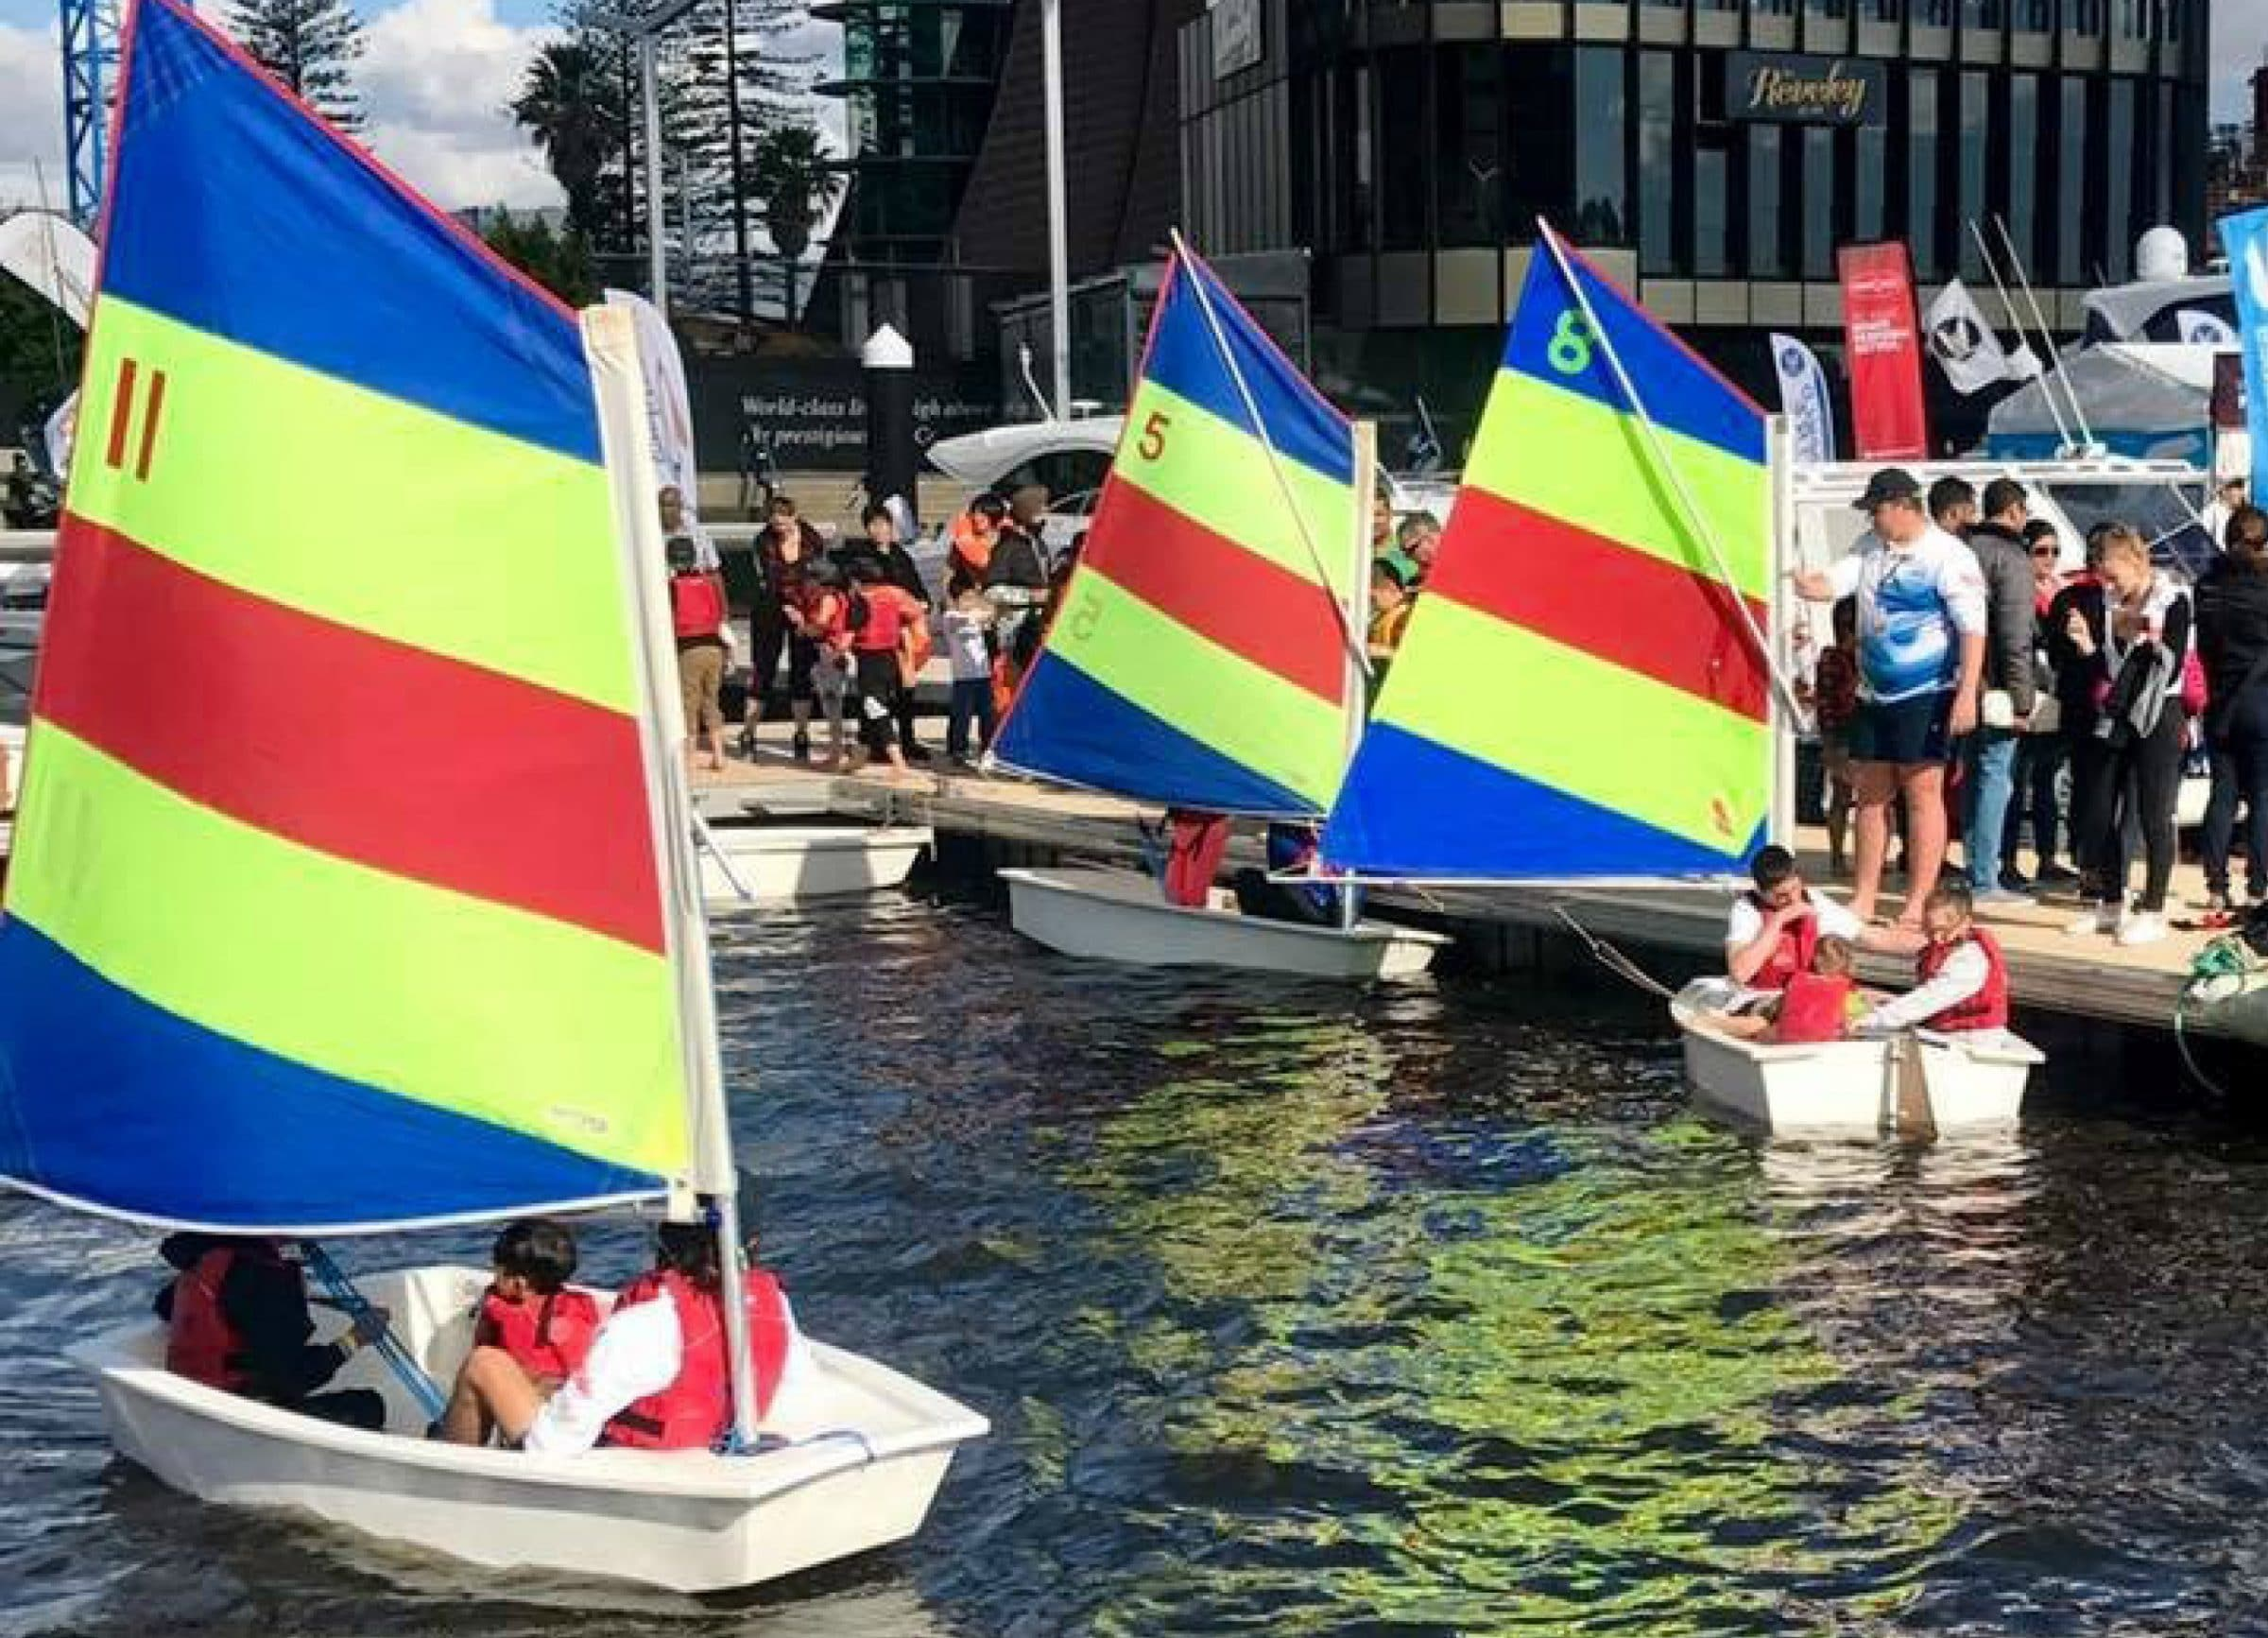 kids sailing little tackers boats at the perth international boat show